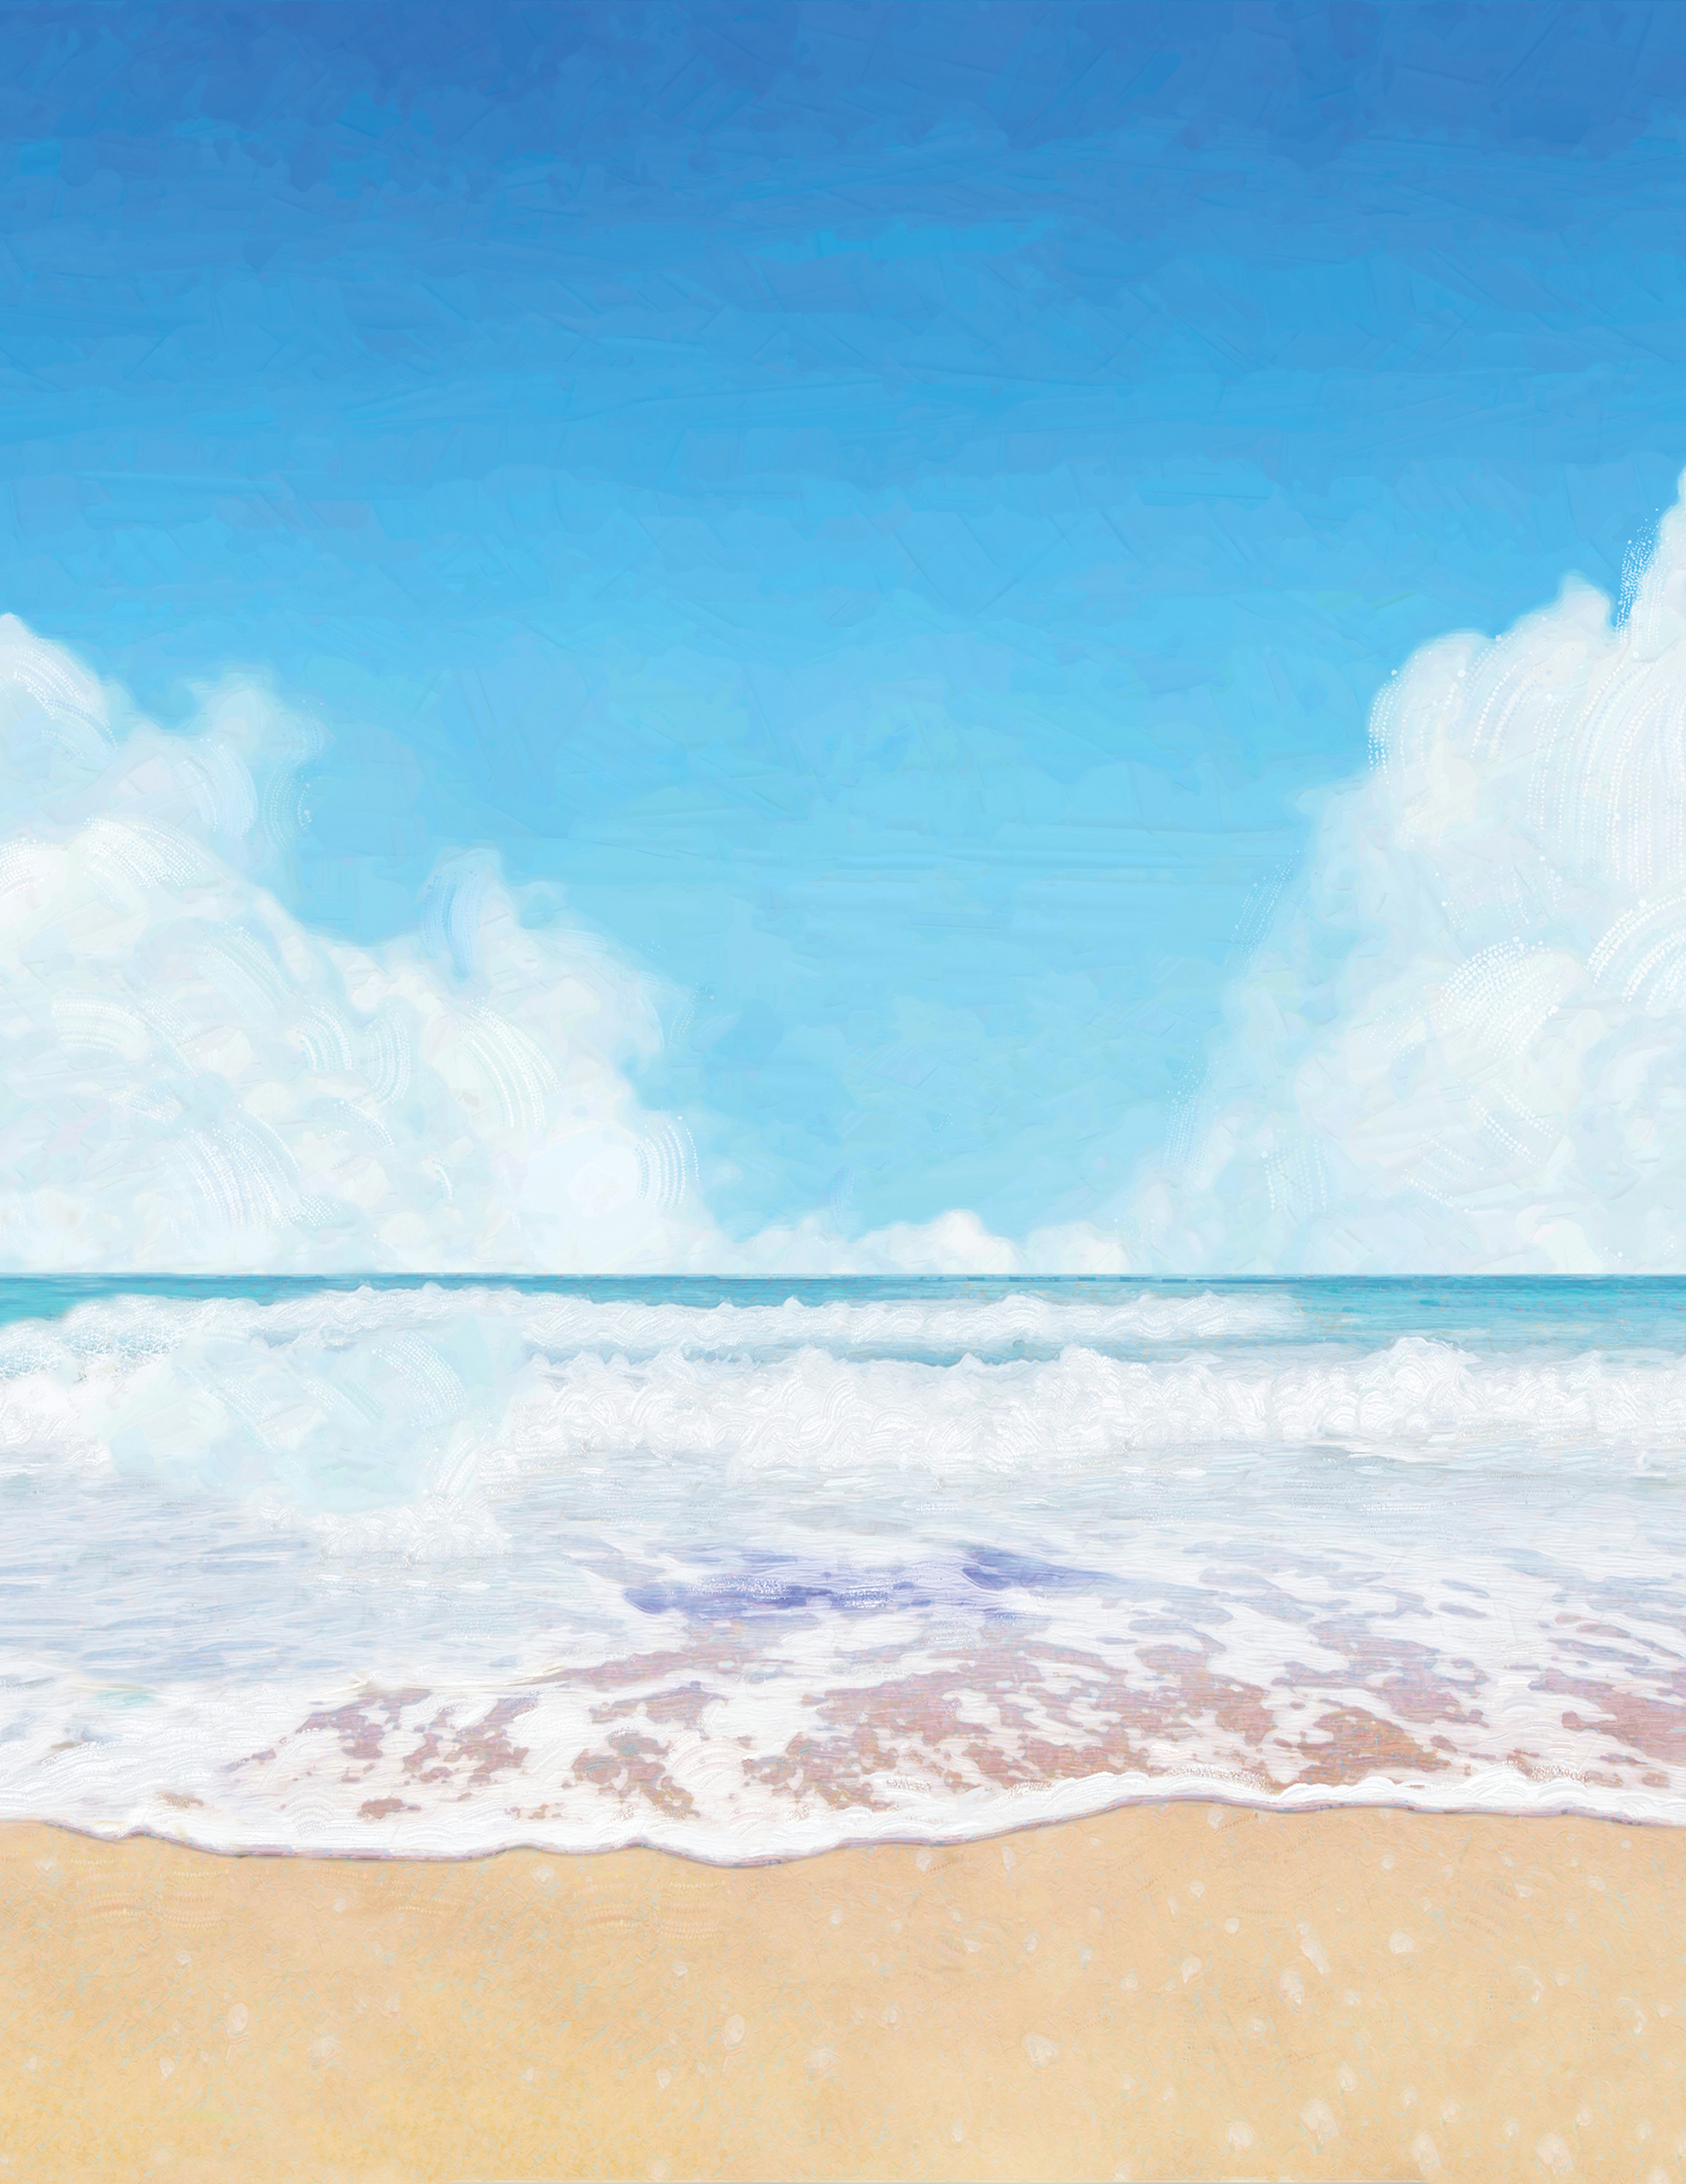 background_beach5_hr